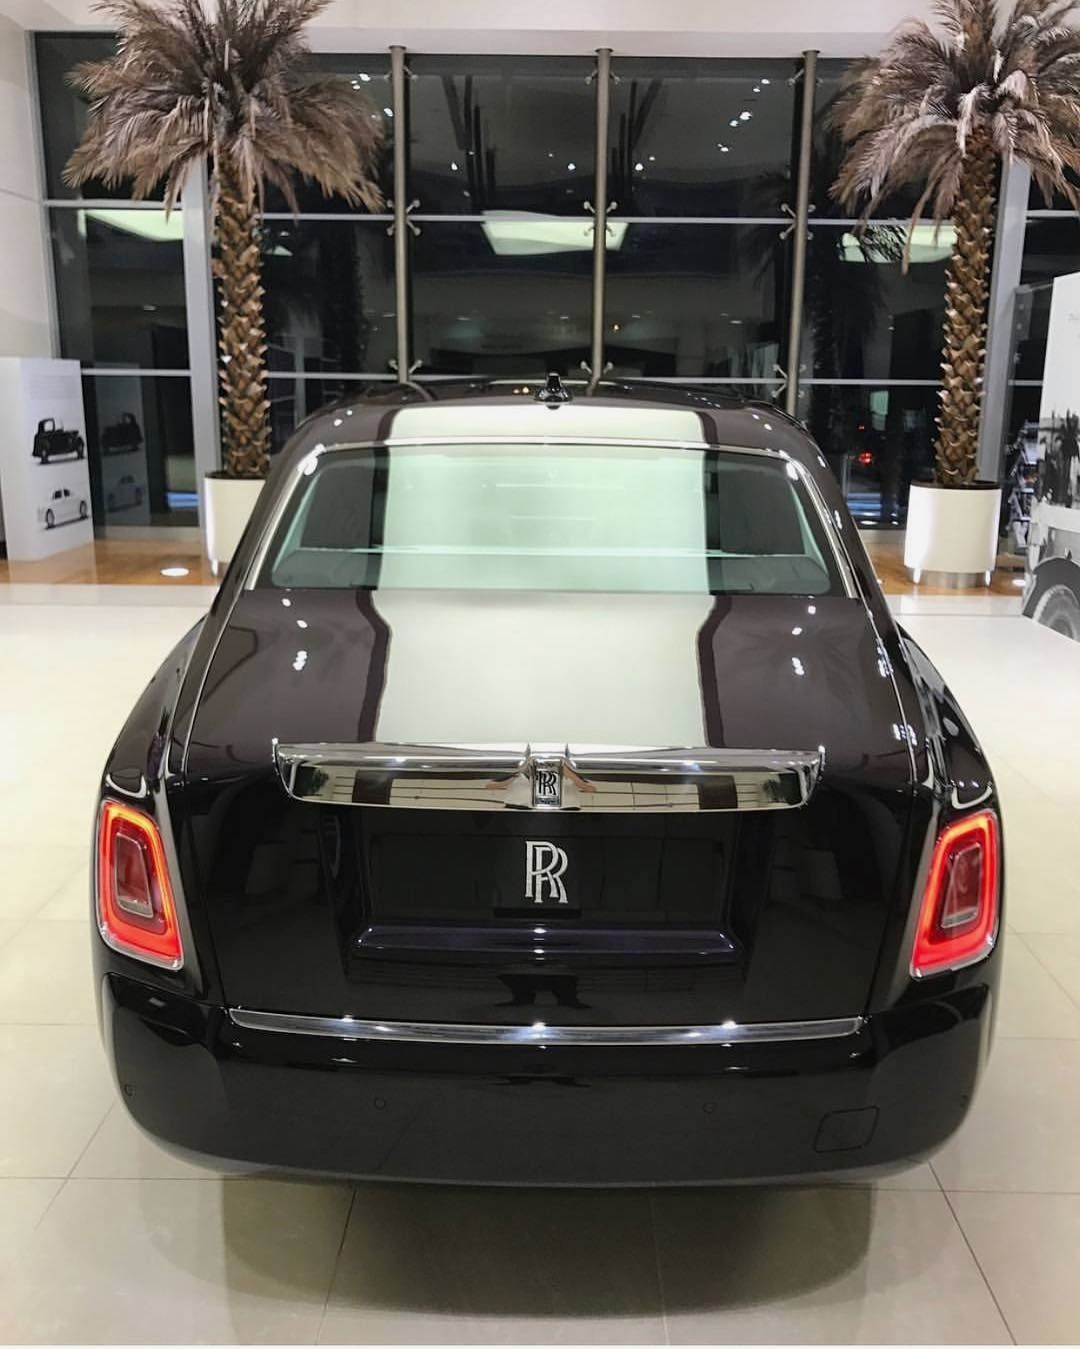 Pin by Andywithcandy on World Rolls royce, Millionaire